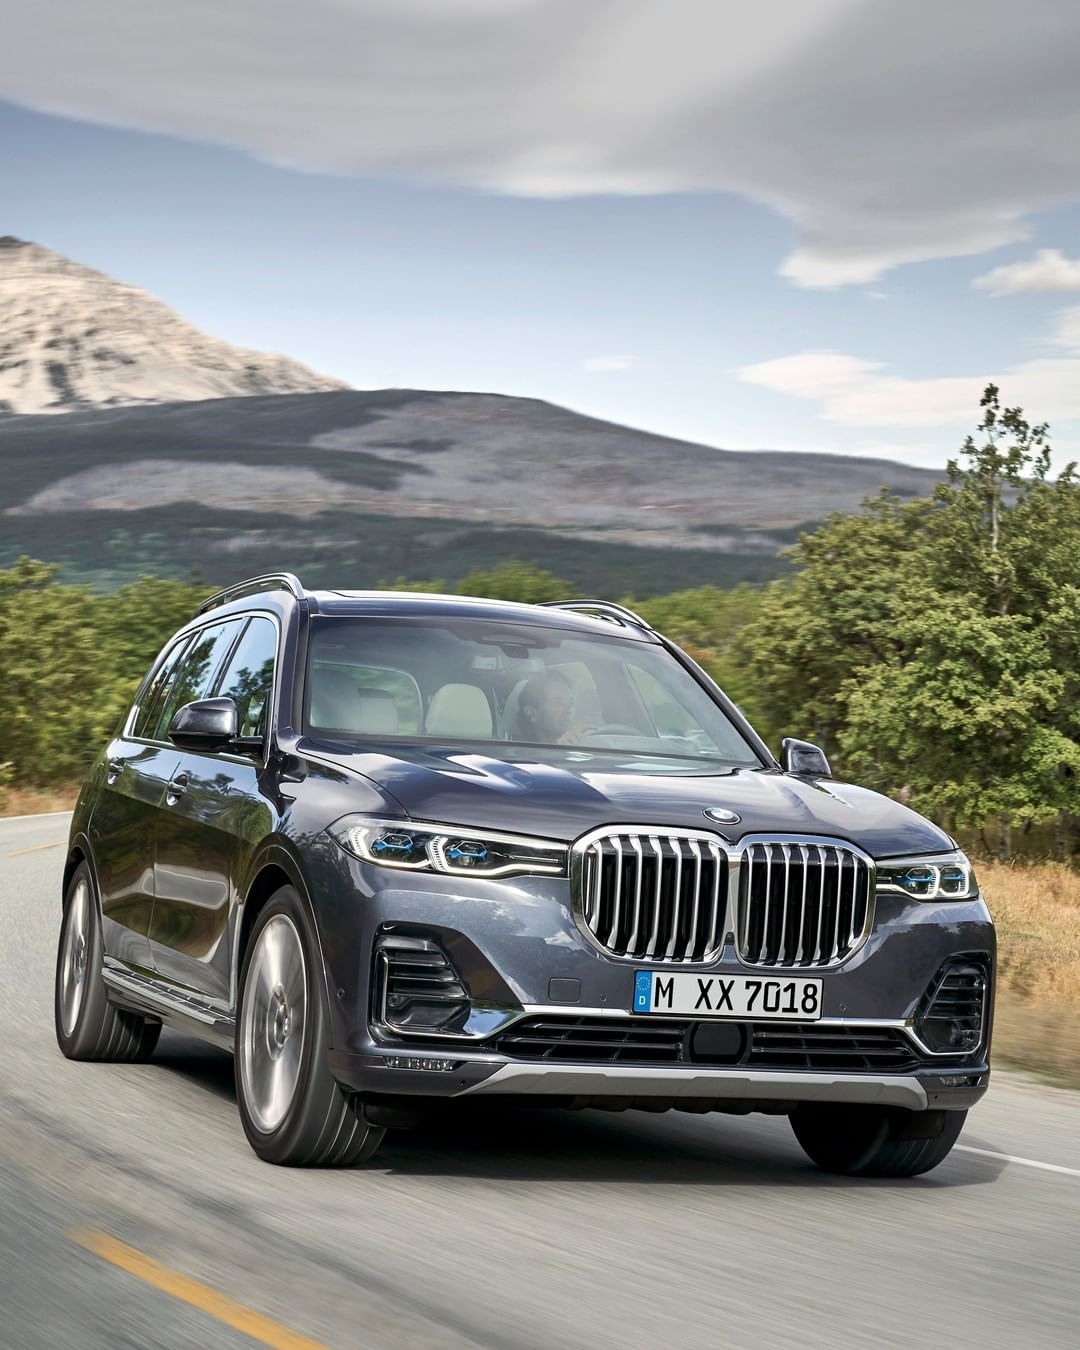 Bmw X7 Suv Price In India: BMW - Ultimate Driving Machine